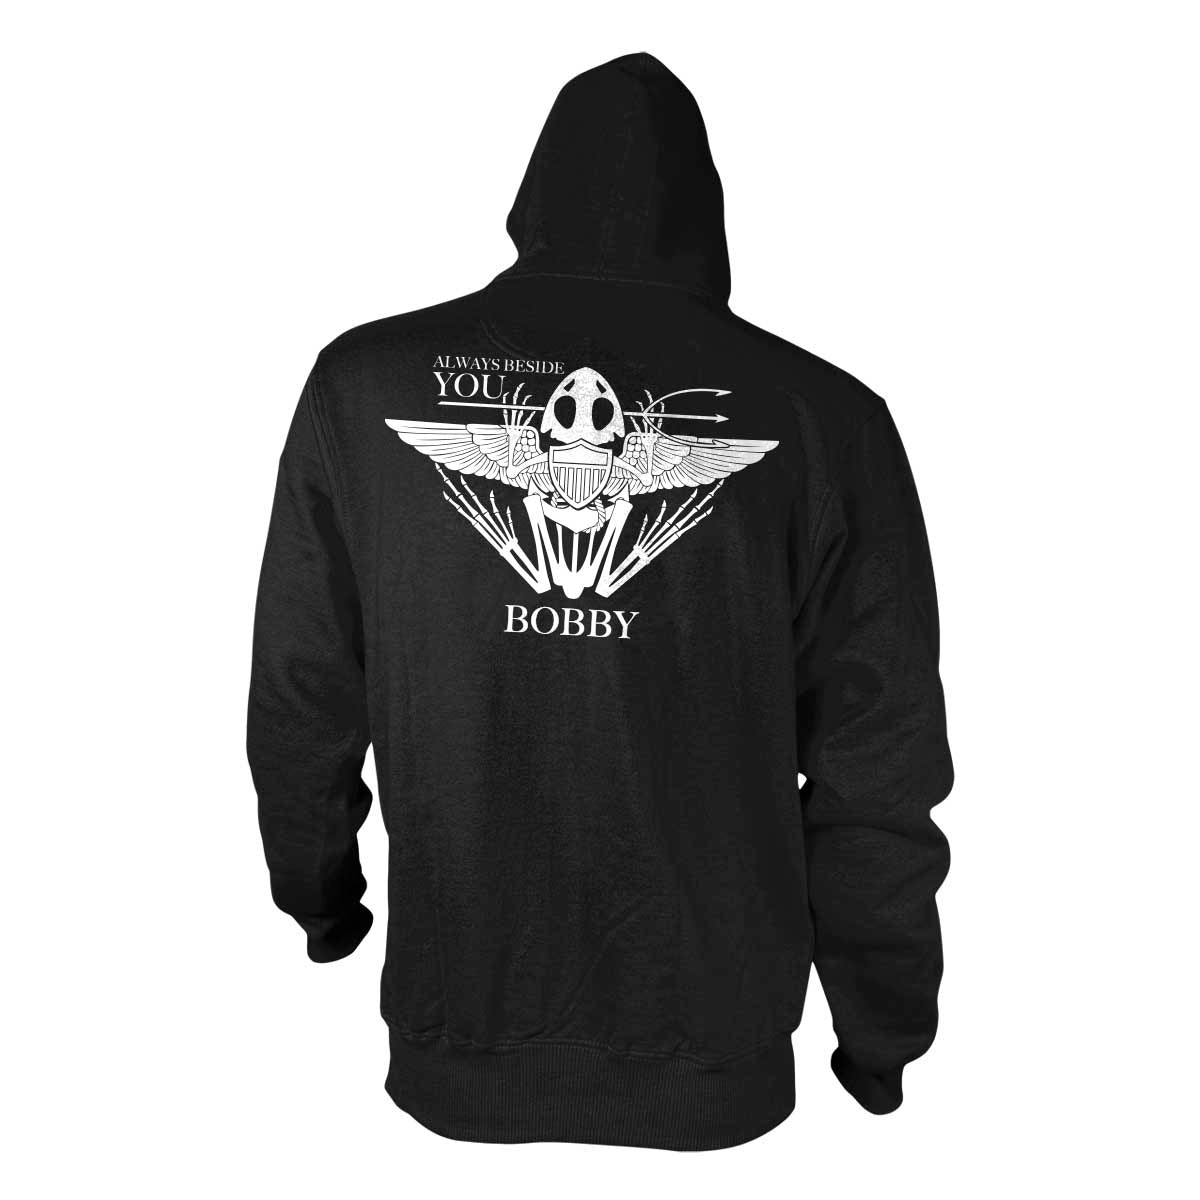 Robert 'Bobby' Needham - Memorial Hoodie - Black - Hoodies - Pipe Hitters Union